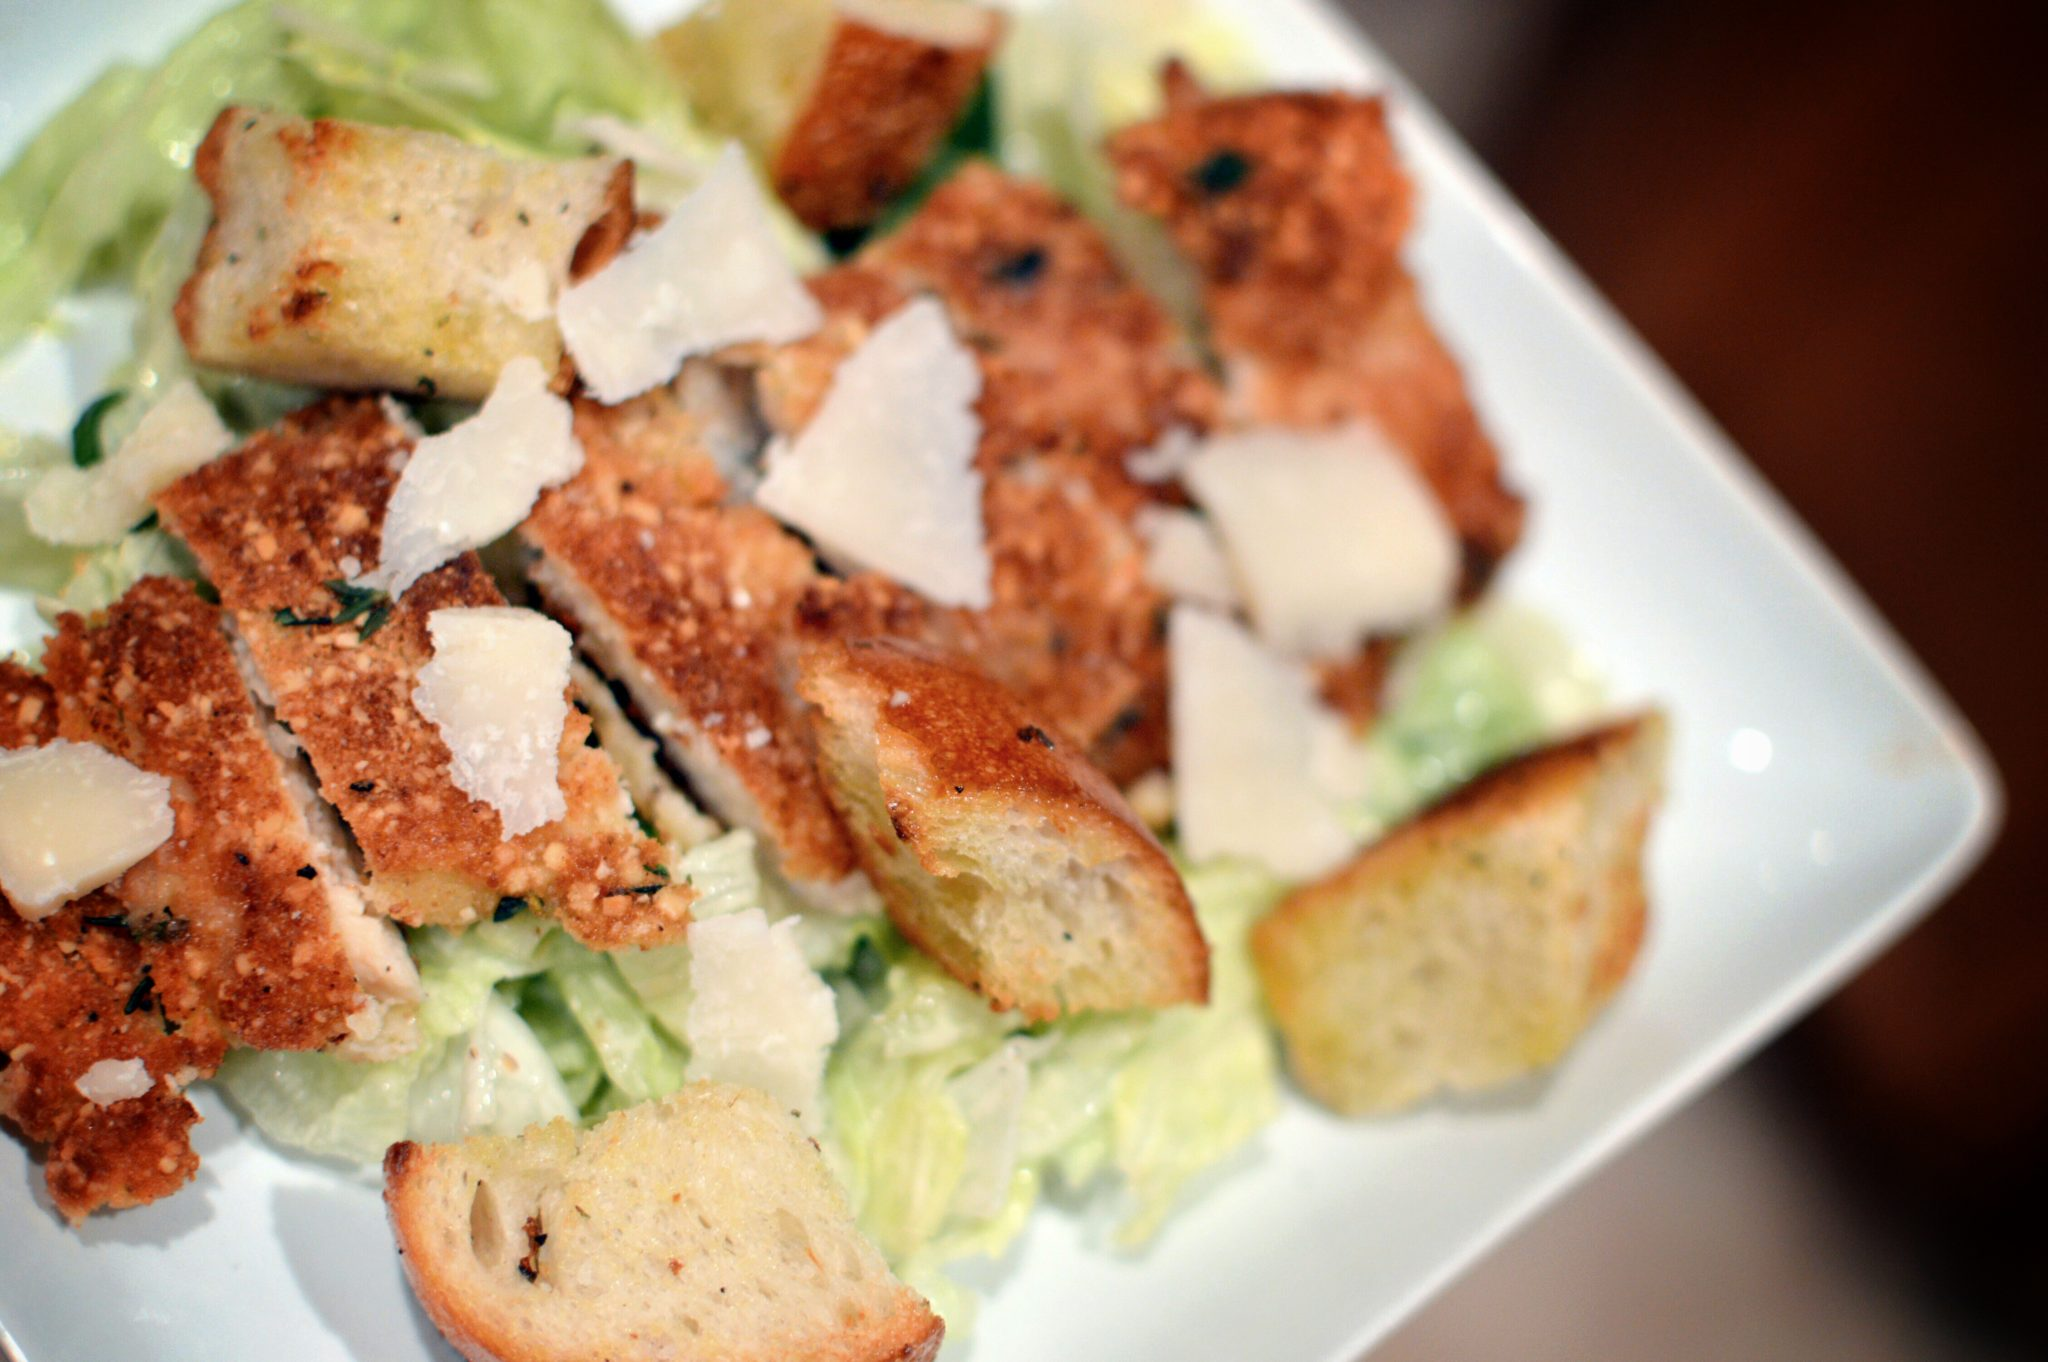 Pan Fried Chicken Caesar Salad